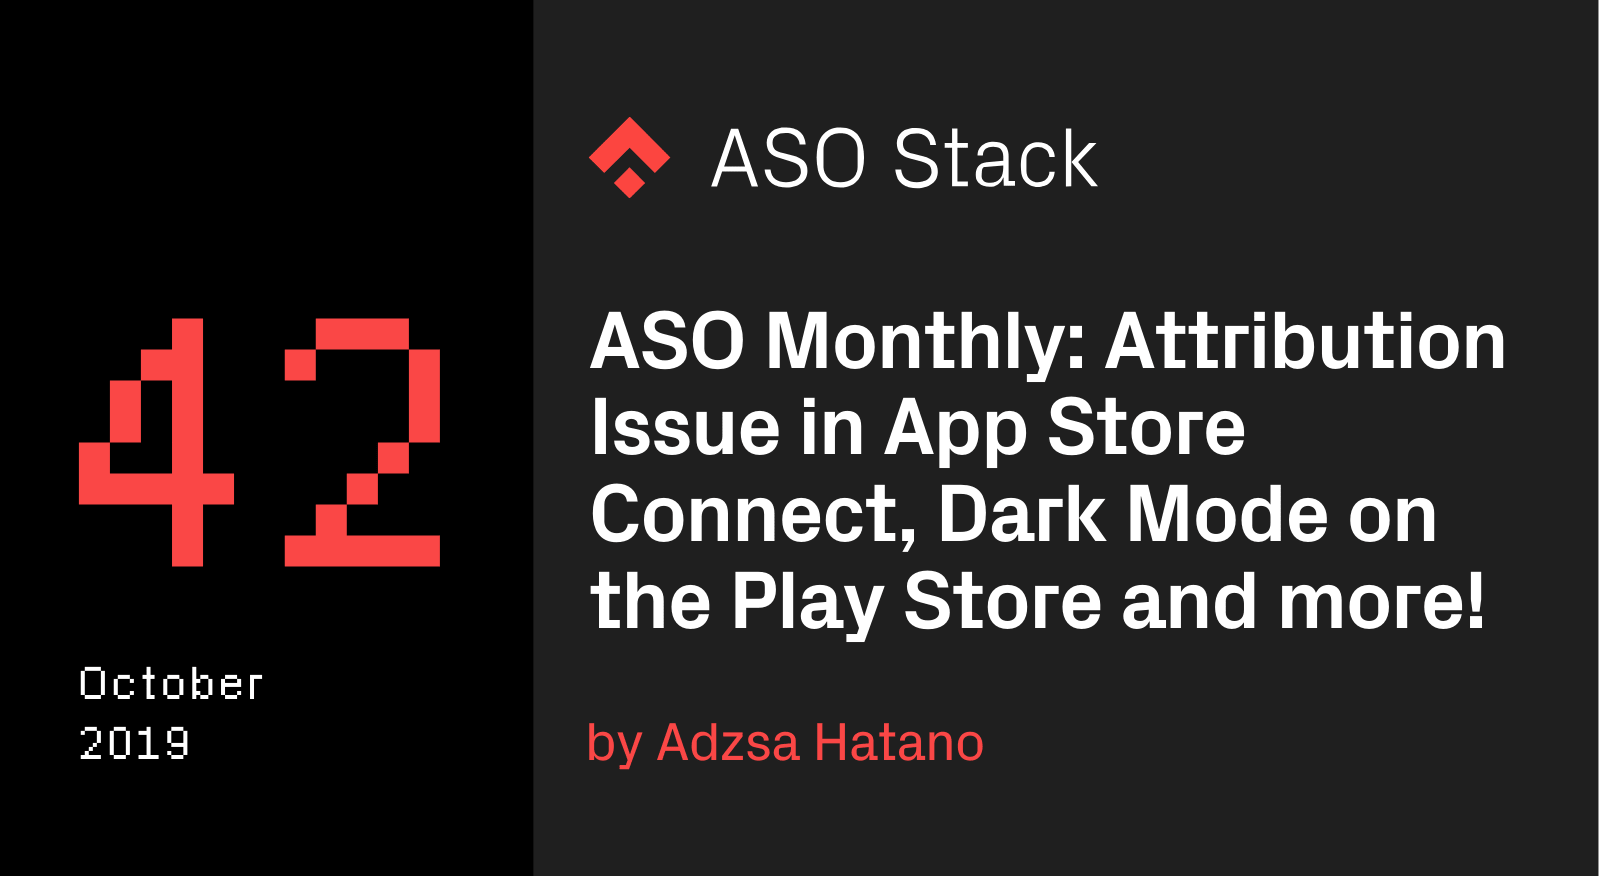 ASO Monthly #42 October 2019- Attribution Issue in App Store Connect, Release of Dark Mode on the Play Store, and more!